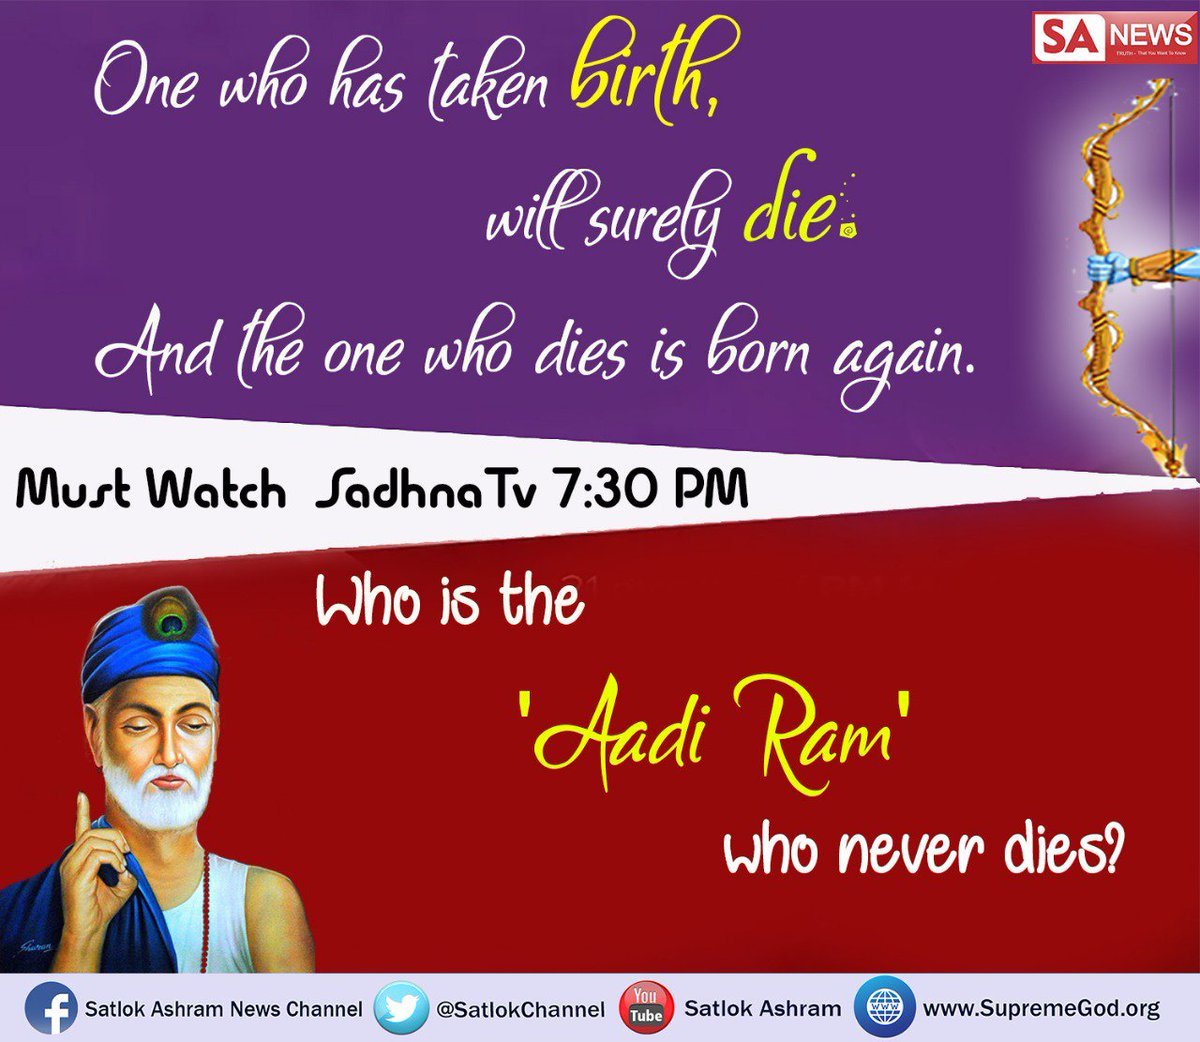 #SaturdayMotivation Life is temporary but death is permanent,we never know what will happen next. So, stop running over money . We need Guru&#39;s shelter for our safety in this life and after life. #mindset <br>http://pic.twitter.com/QnDVBTEWuW